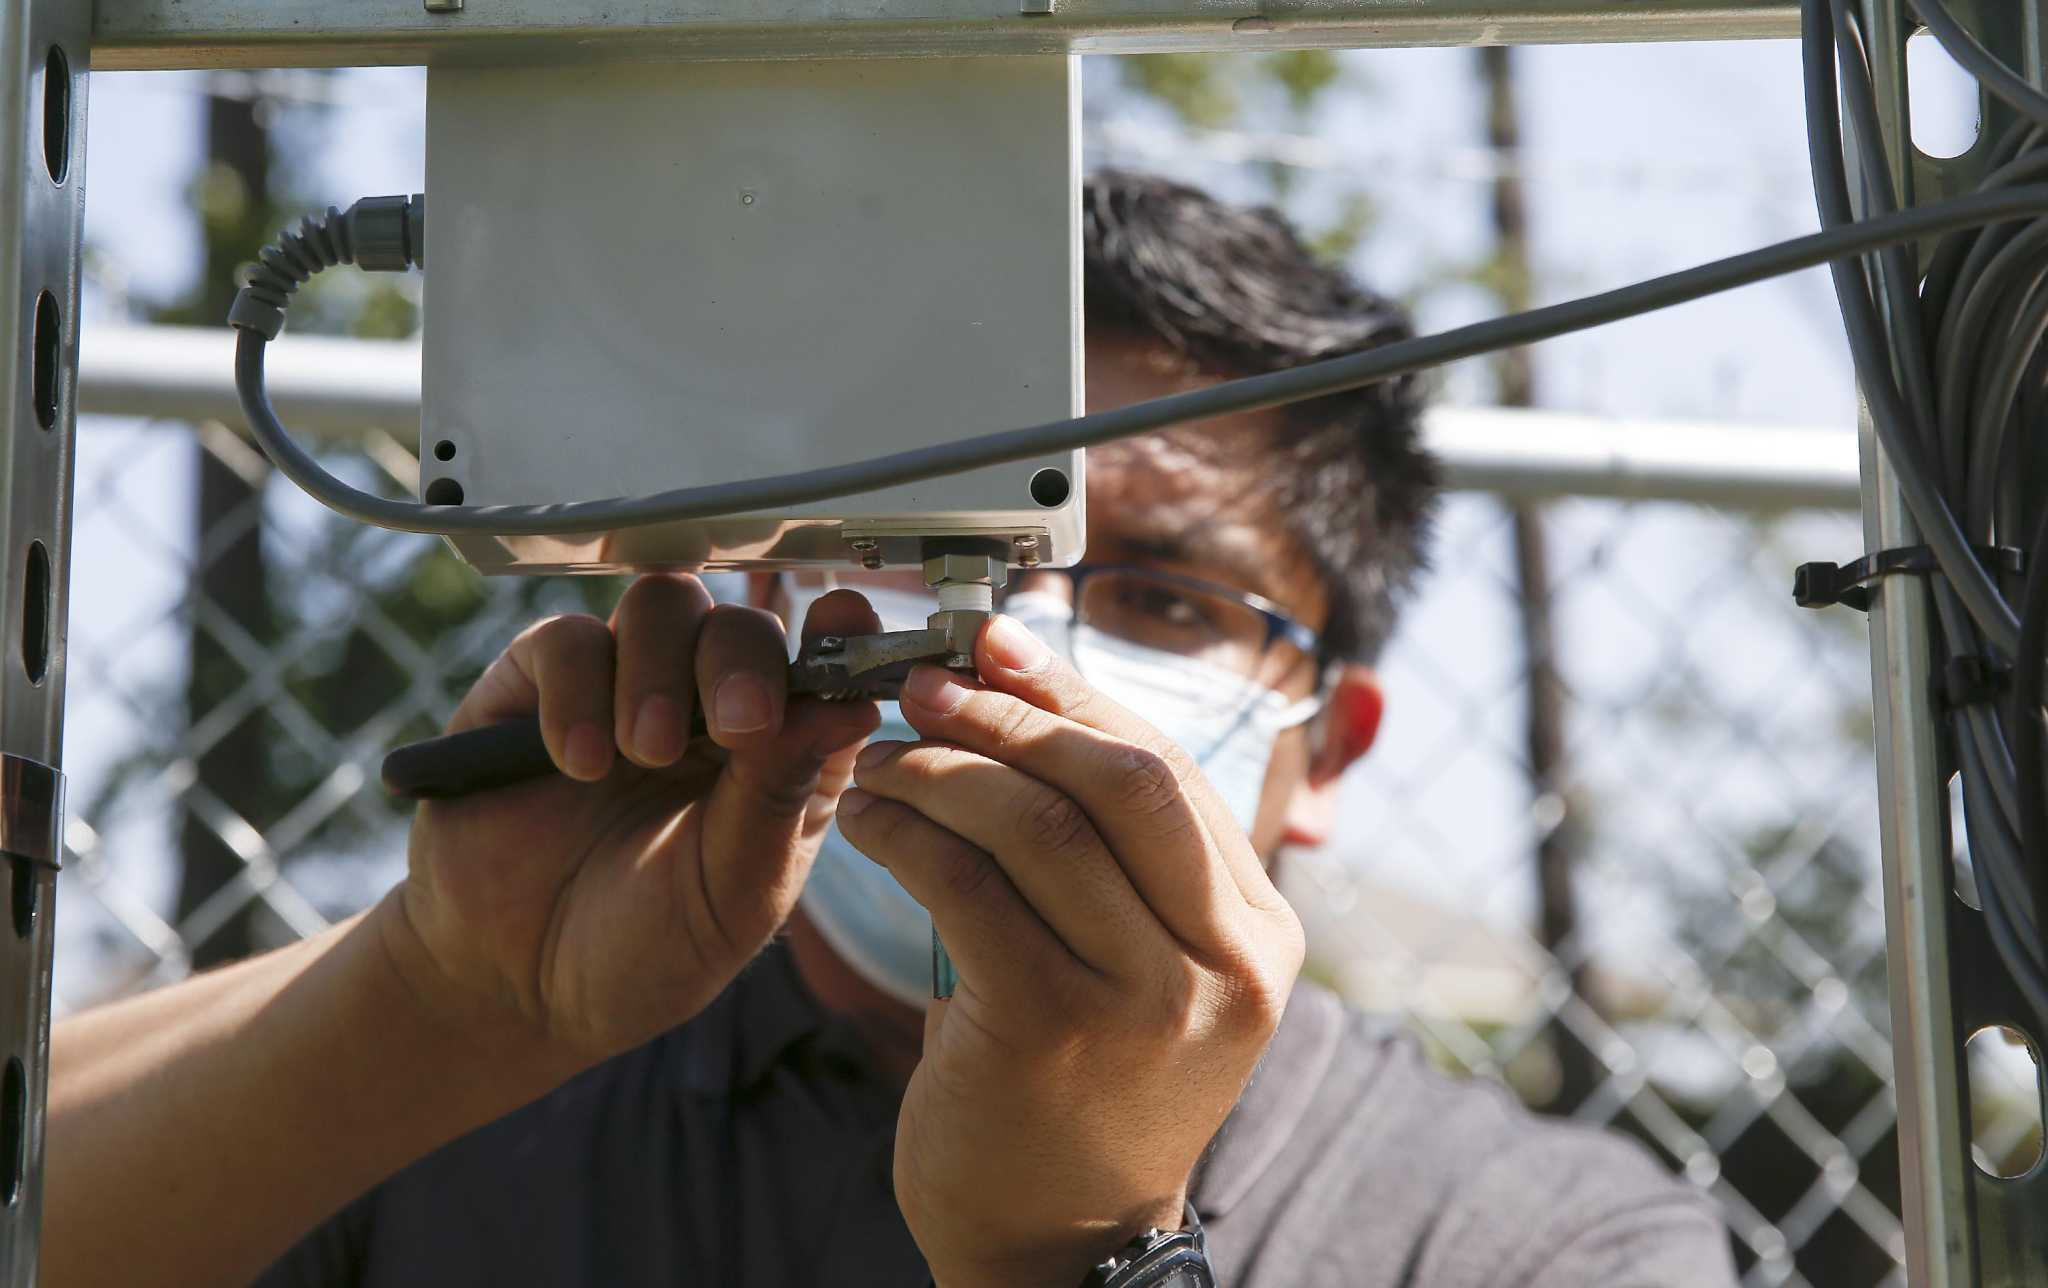 How Harris County and Houston are fixing air monitoring that 'seemed like chaos'